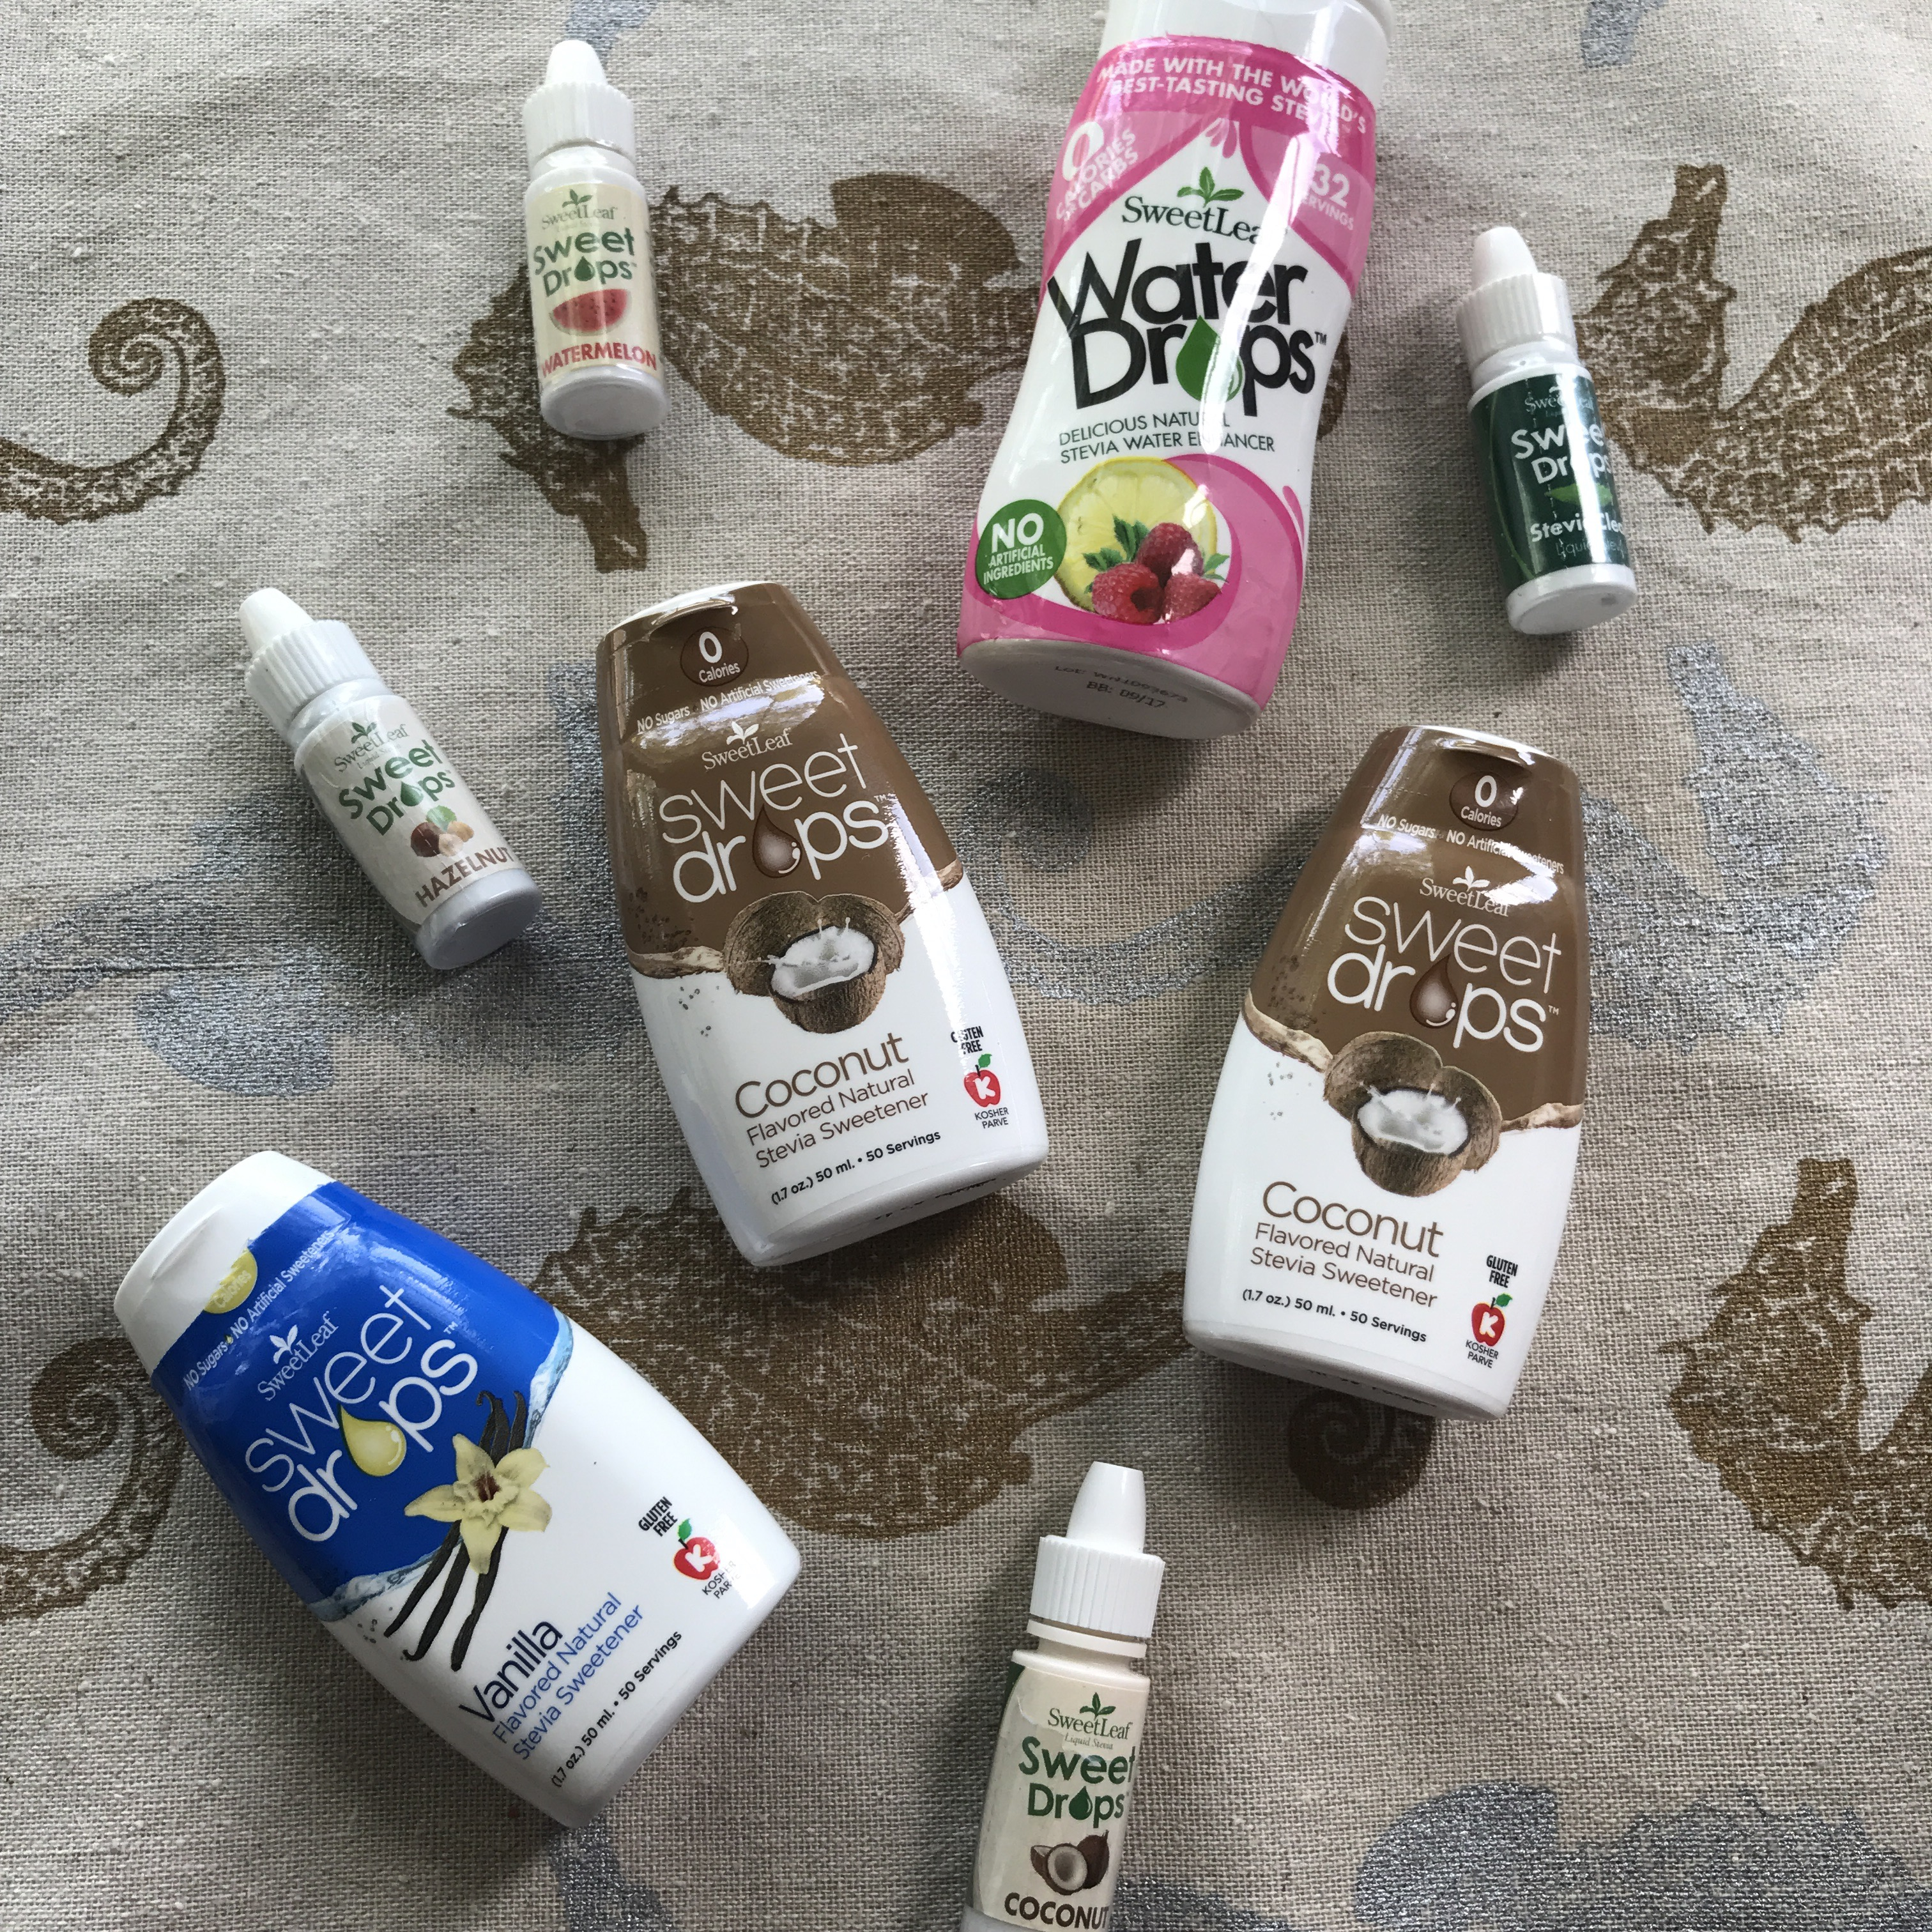 I want that products - Overall I Am Very Impressed With Sweetleaf S Products And Can Say That This Will Be My New Go To Sweetener Delicious In Everything From Baking To Tea